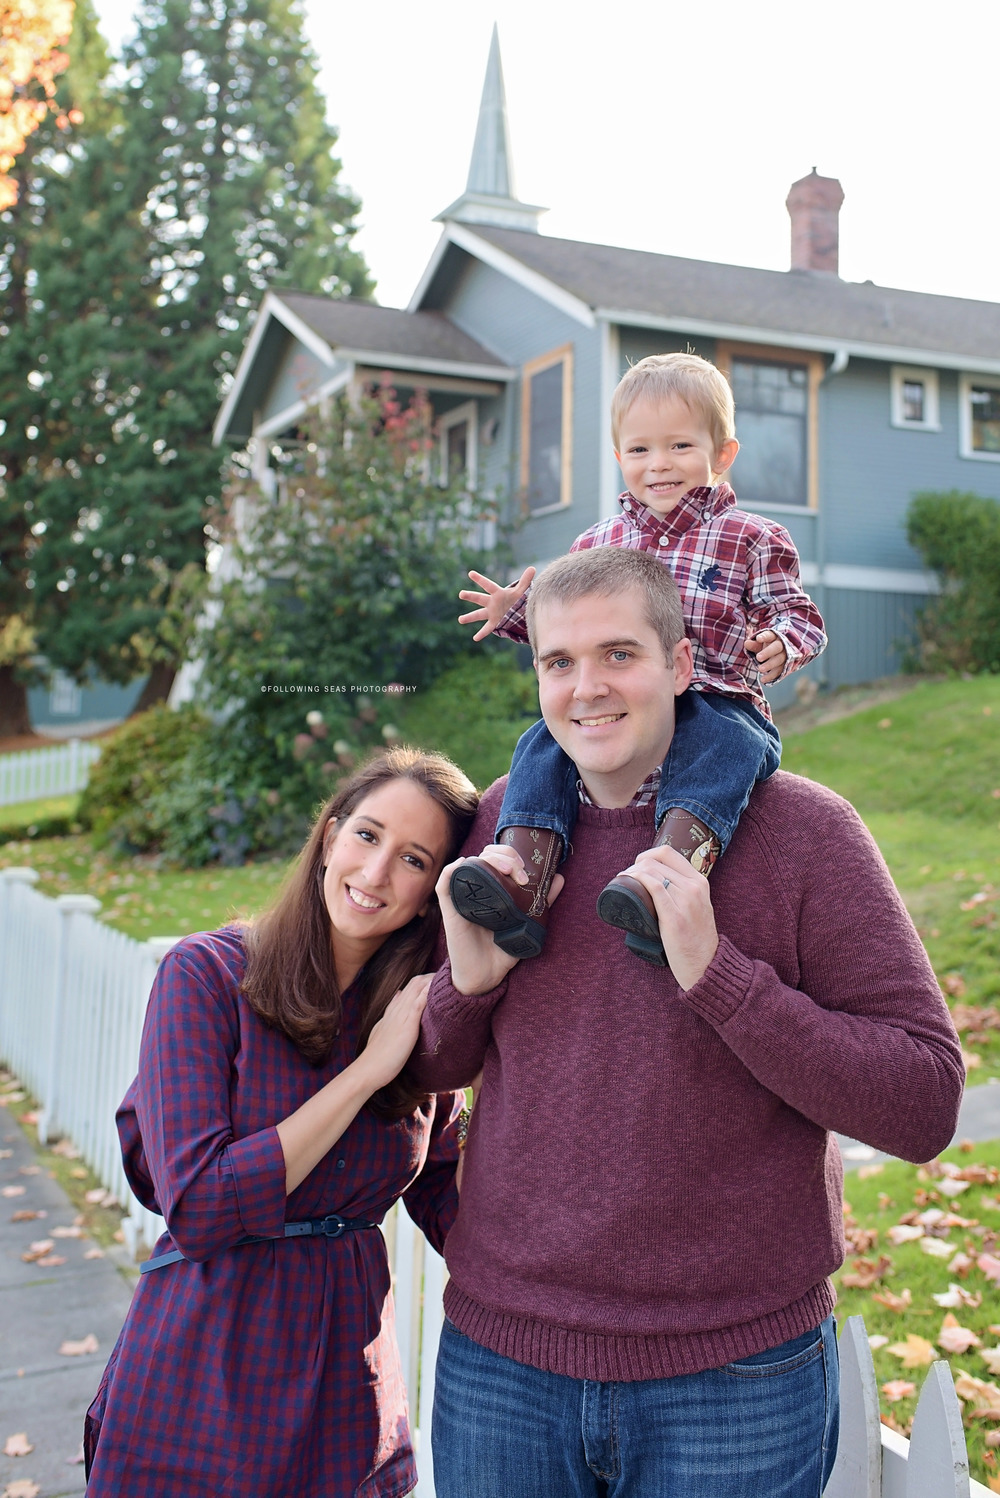 Bremerton-Family-Photographer-Following-Seas-Photography-9754 copysocial.jpg